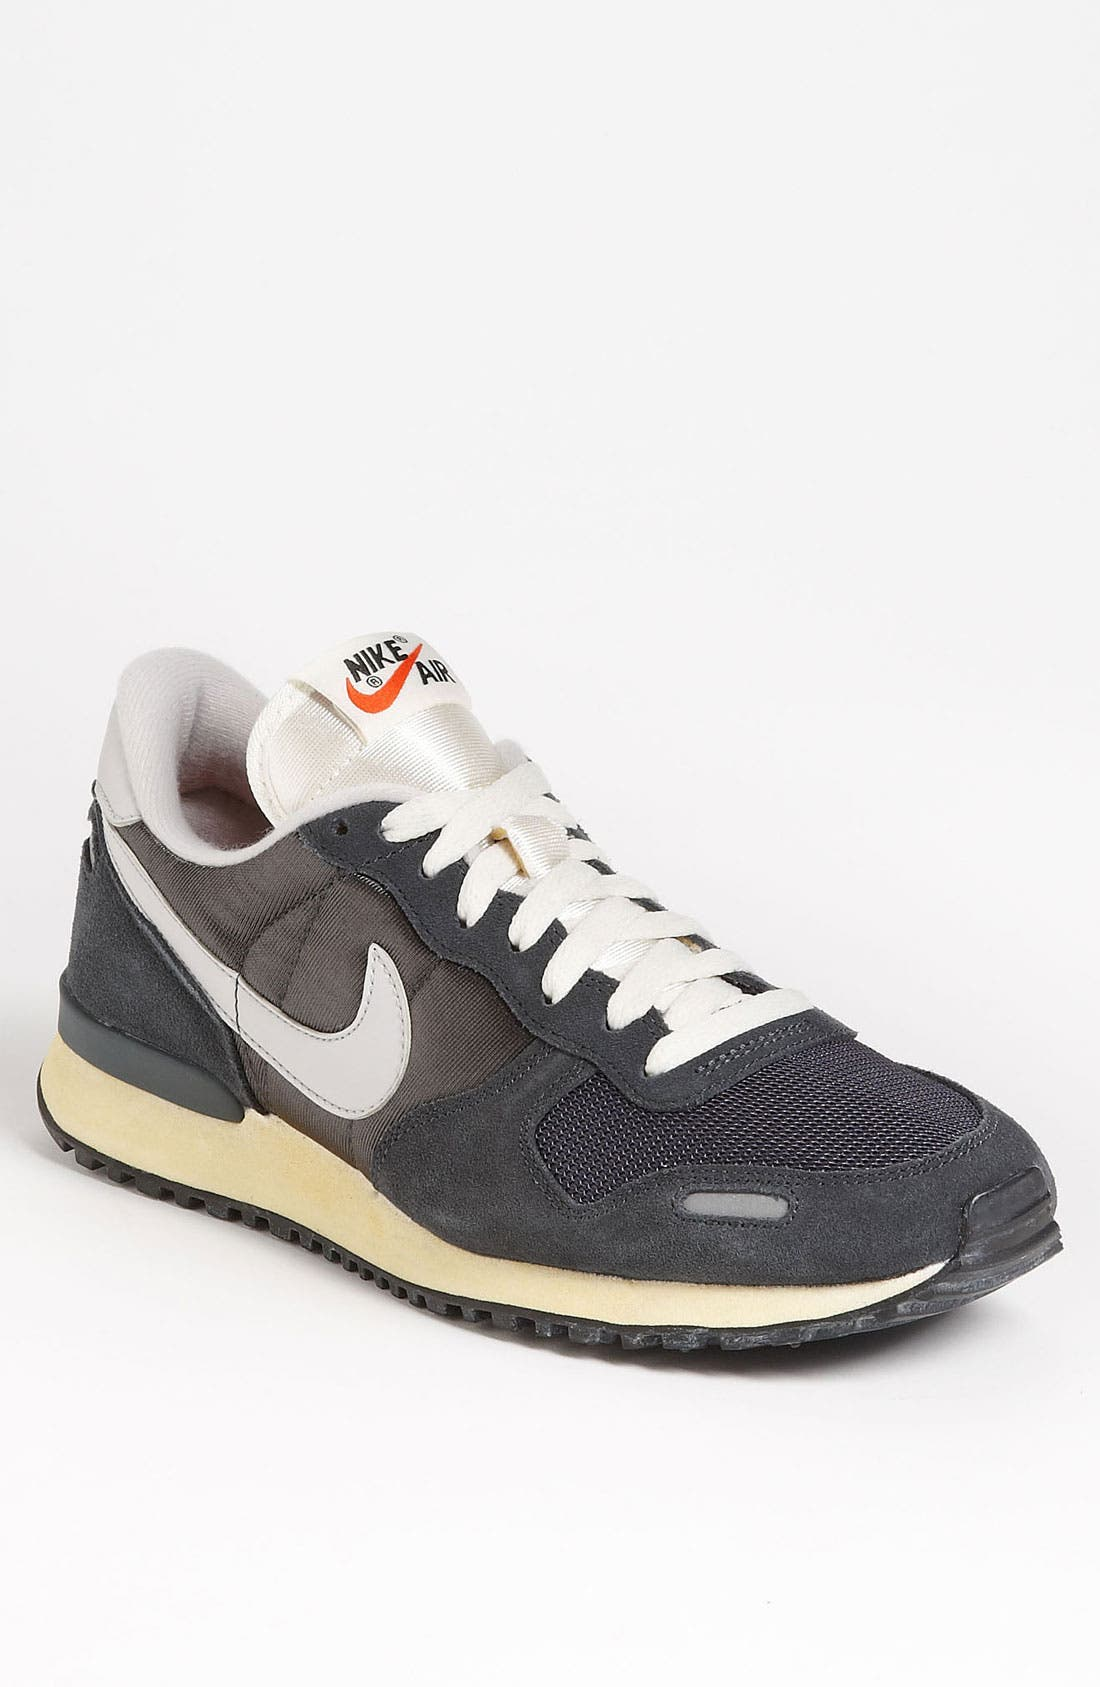 Main Image - Nike 'Air Vortex - Vintage' Sneaker (Men)